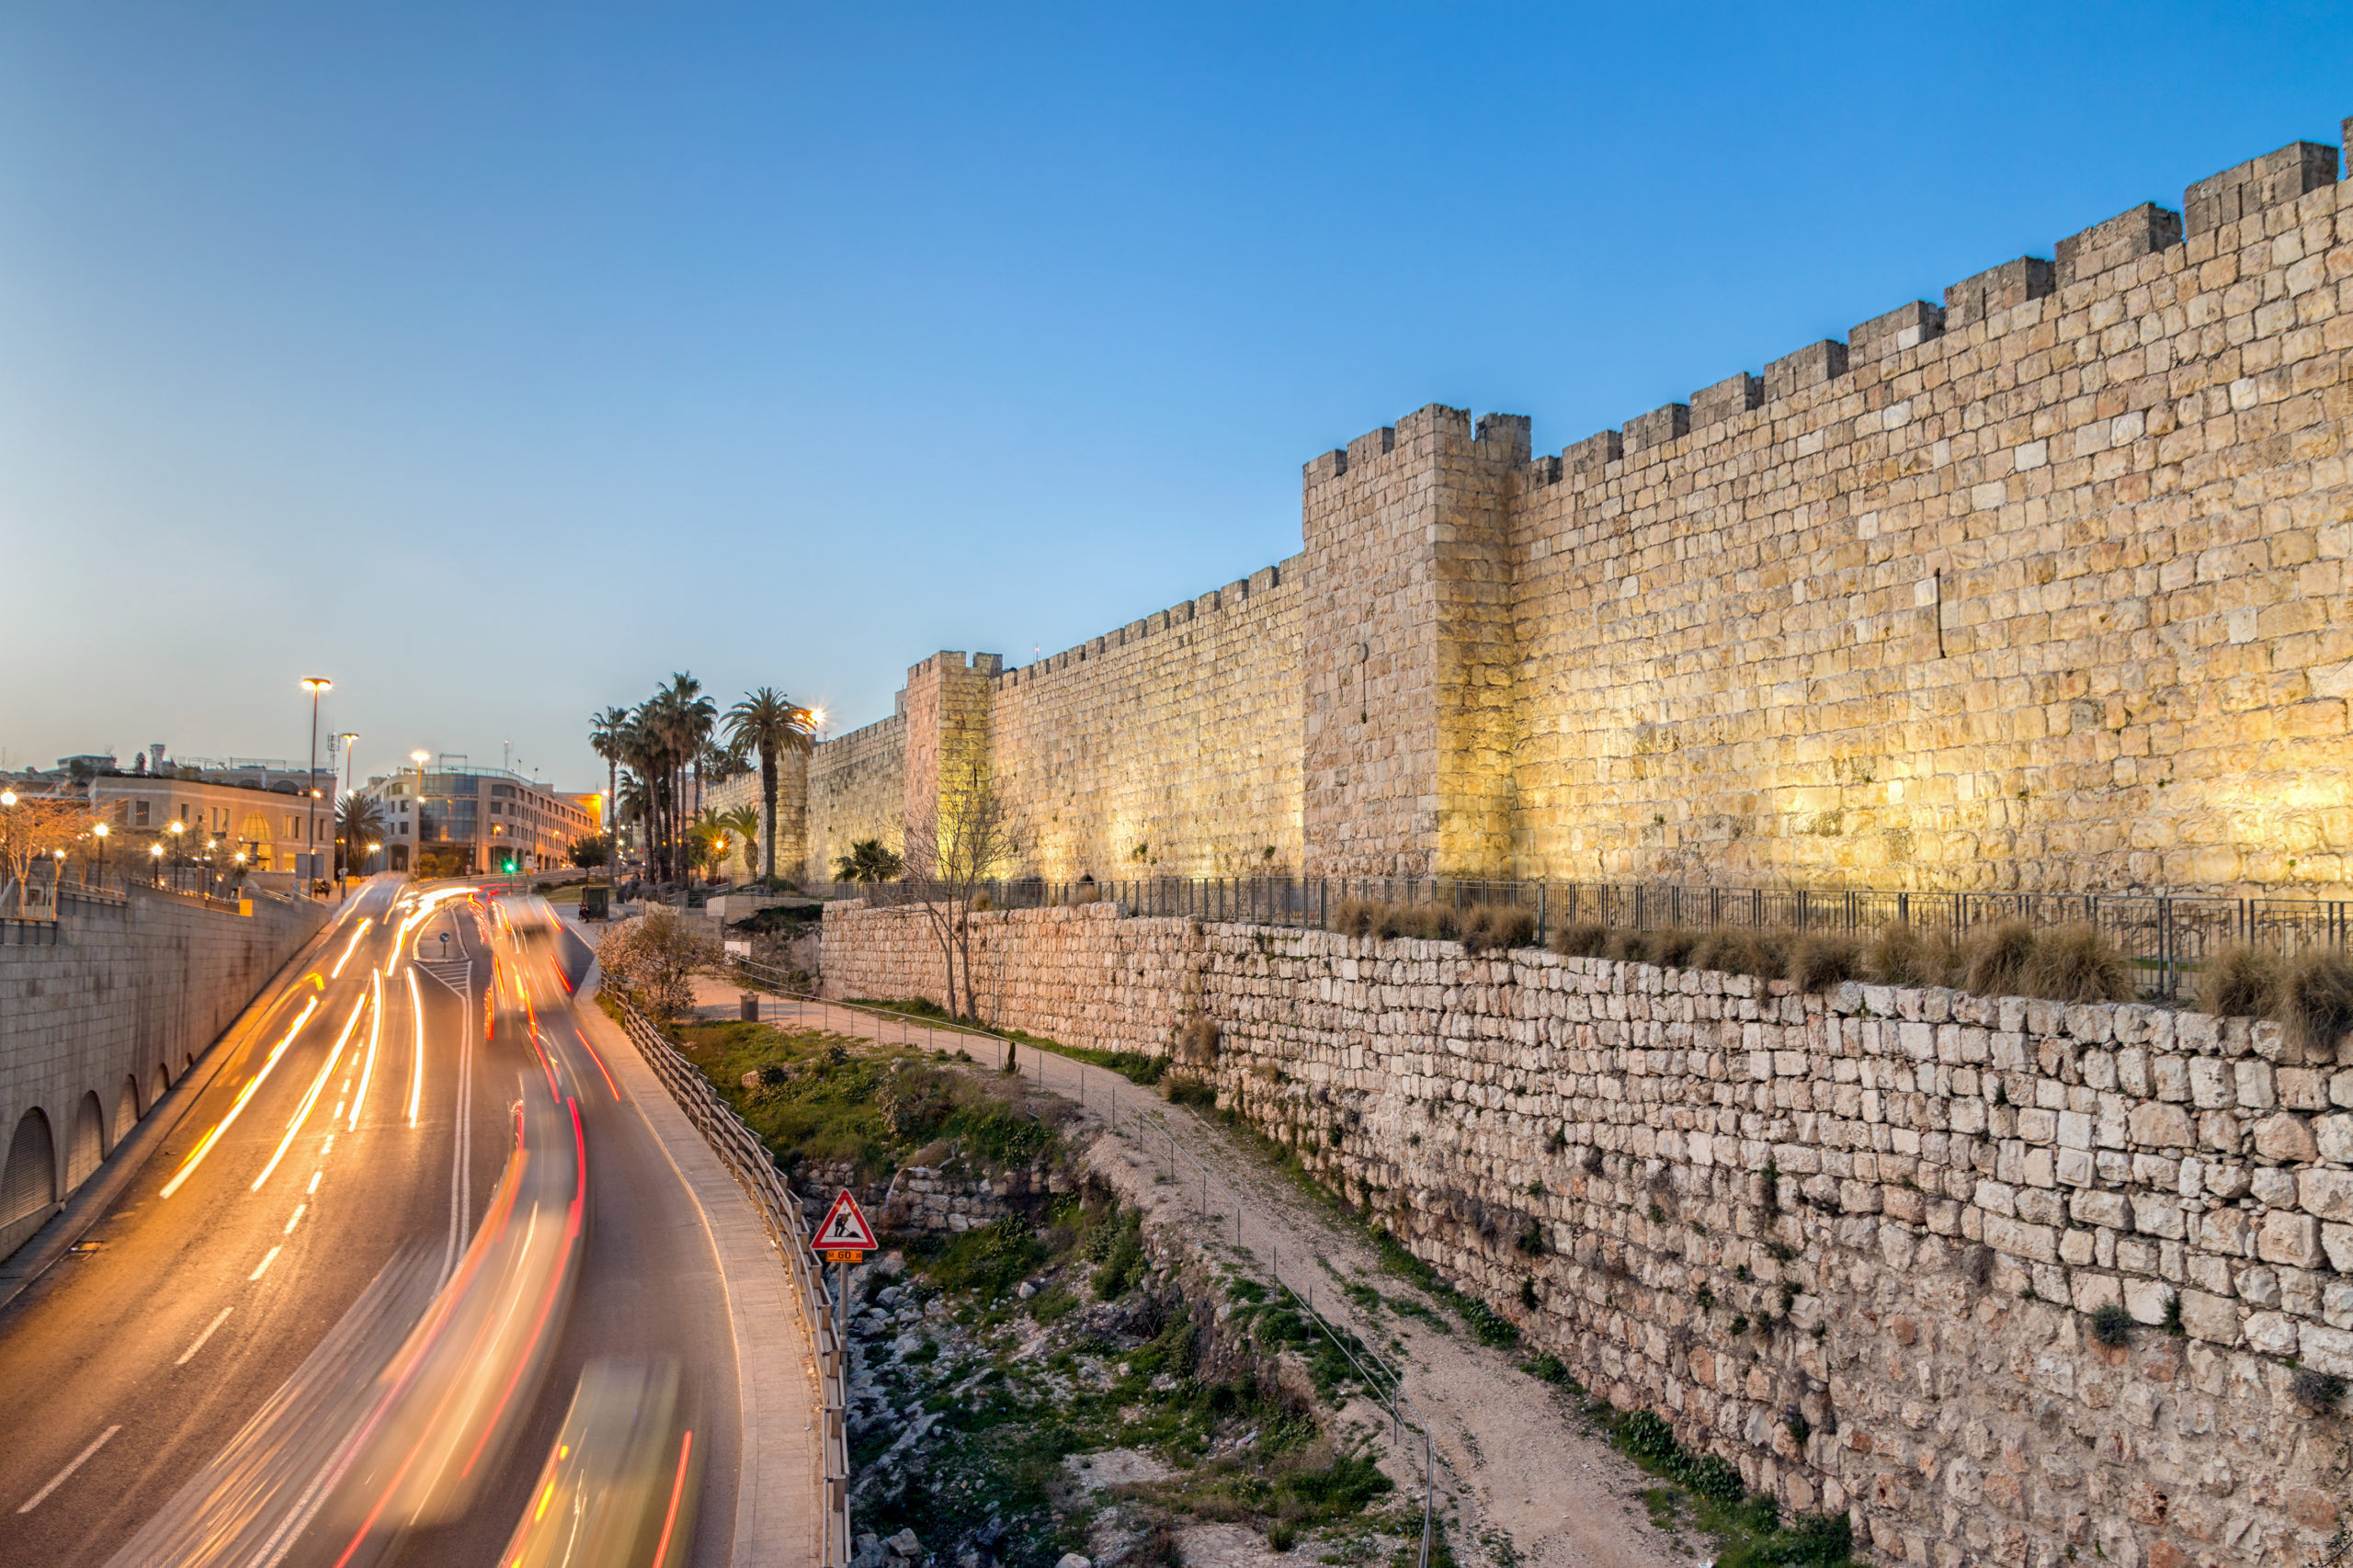 shutterstock_591910751_-old-city-walls-at-jaffa-gate